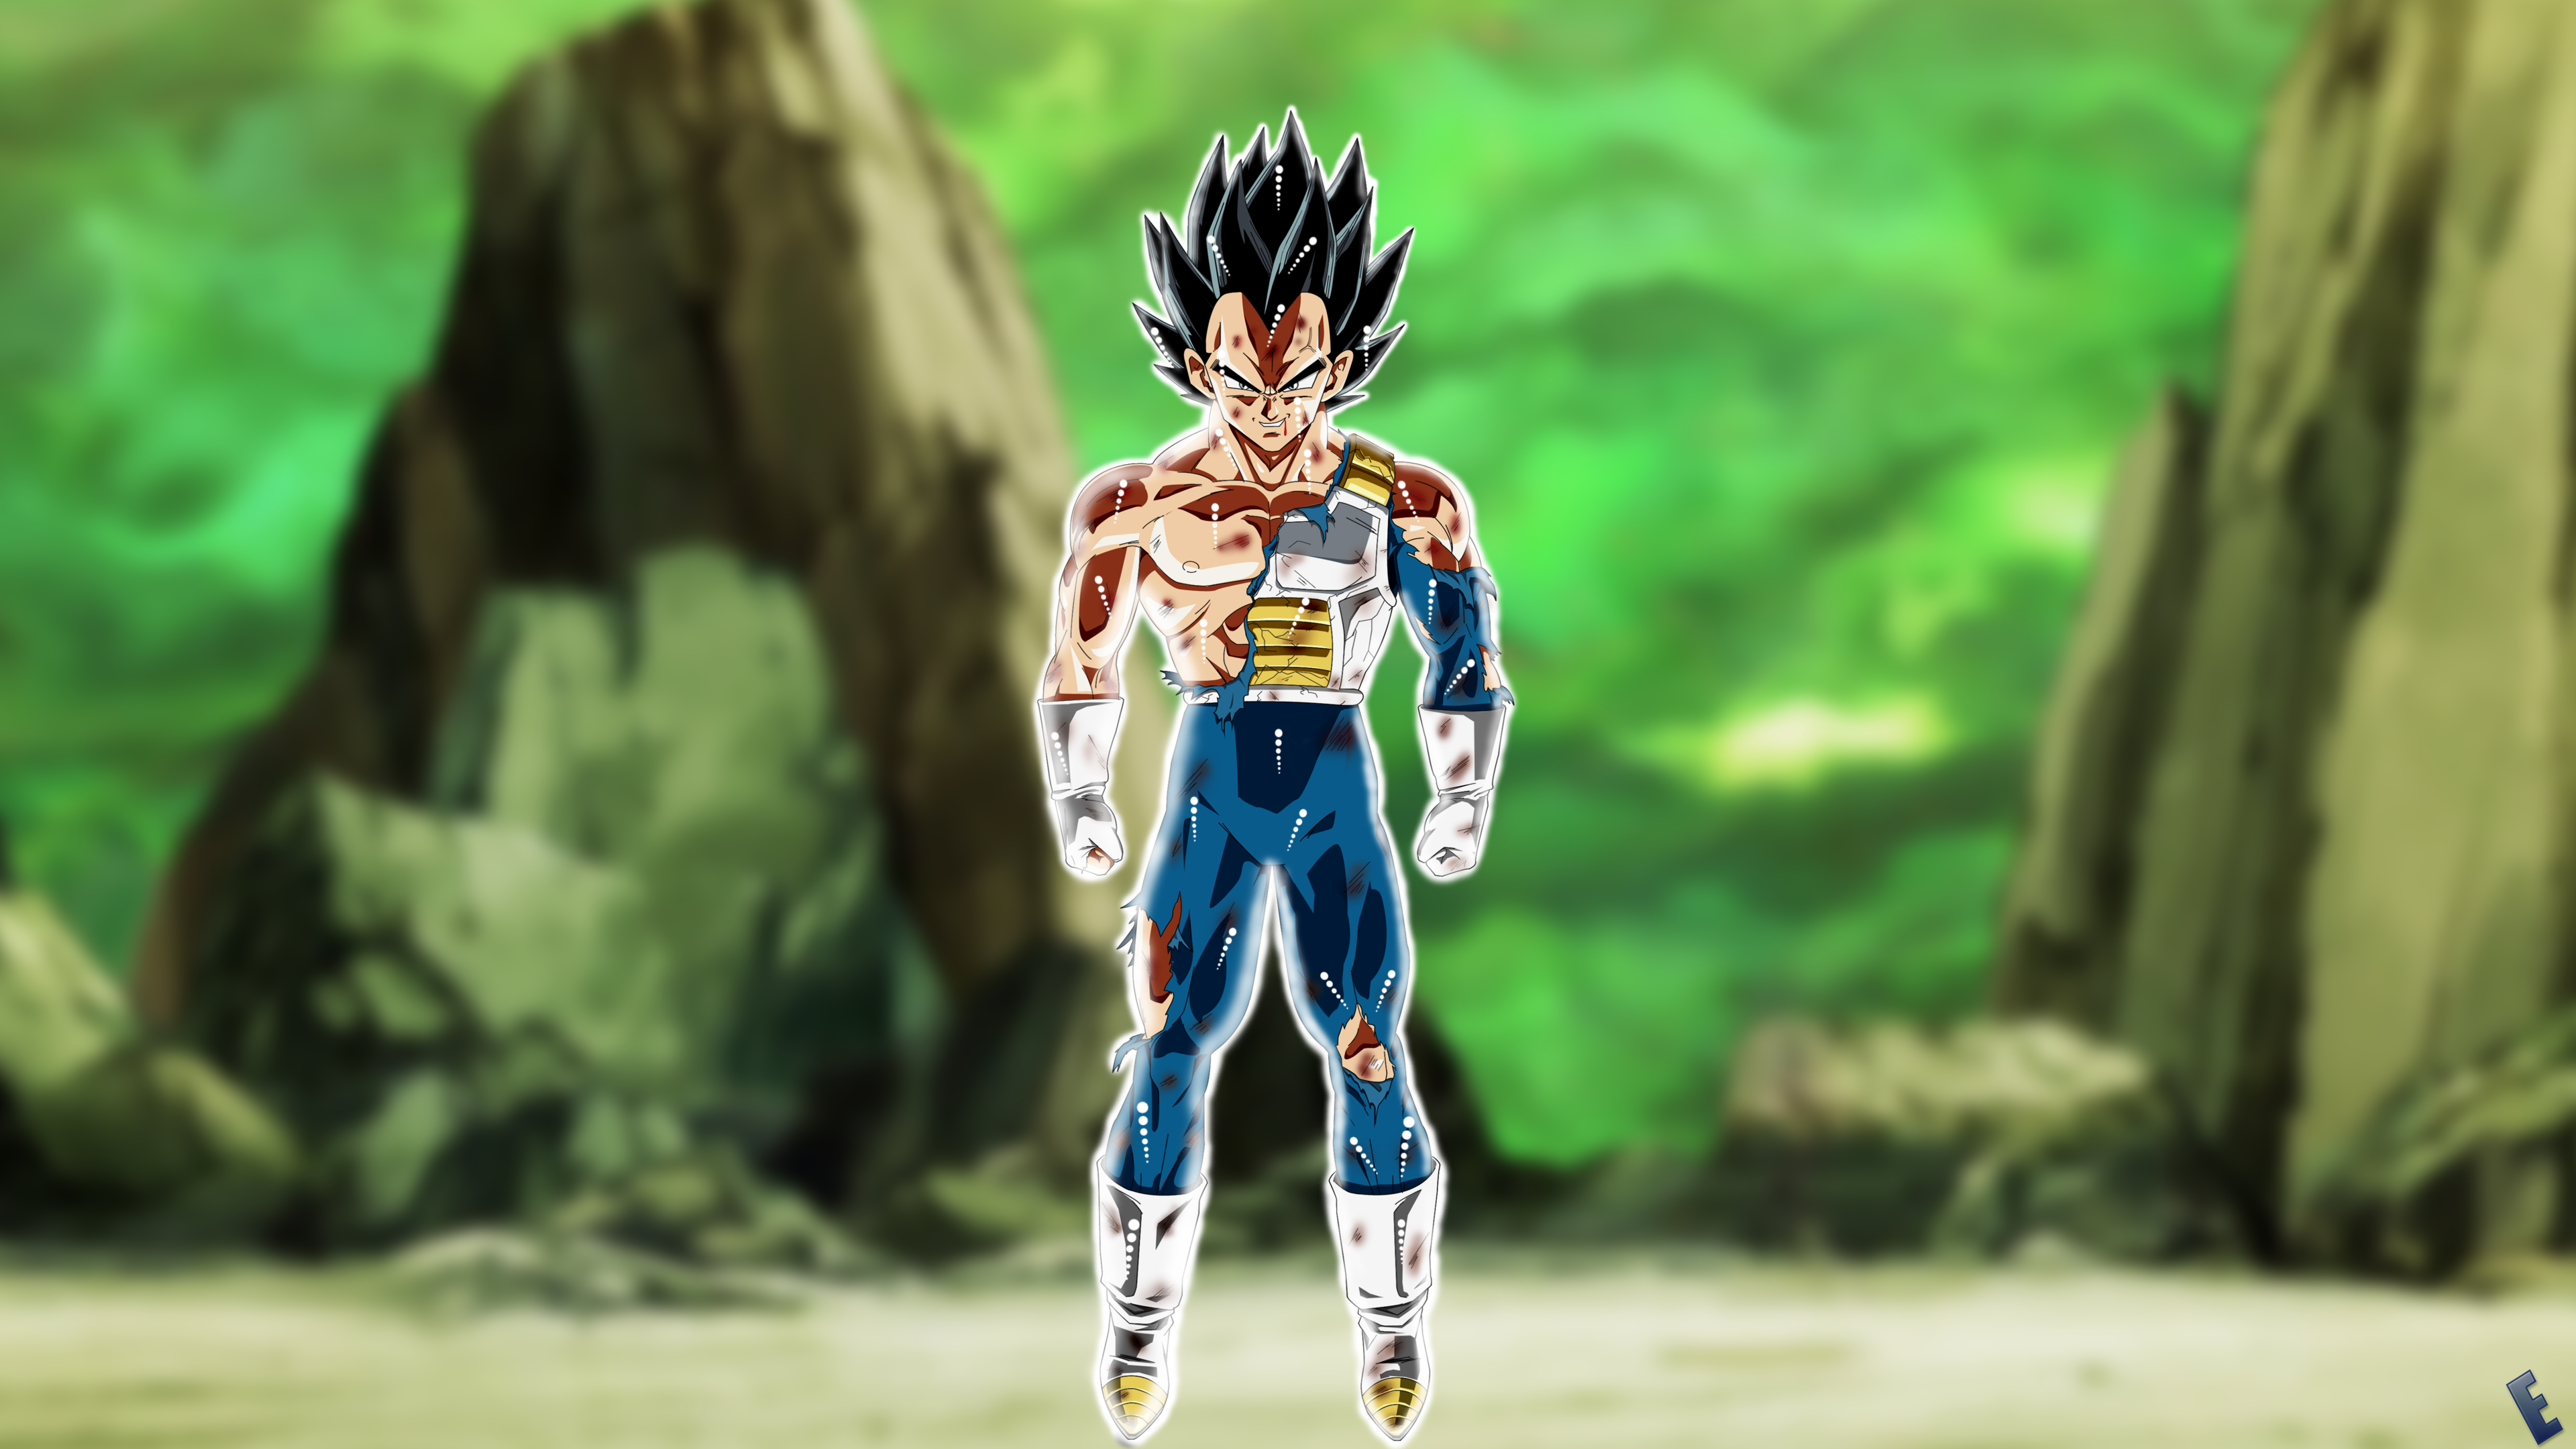 Vegeta migate no gokui 4k ultra hd fondo de pantalla and for Fondo de pantalla 4k anime